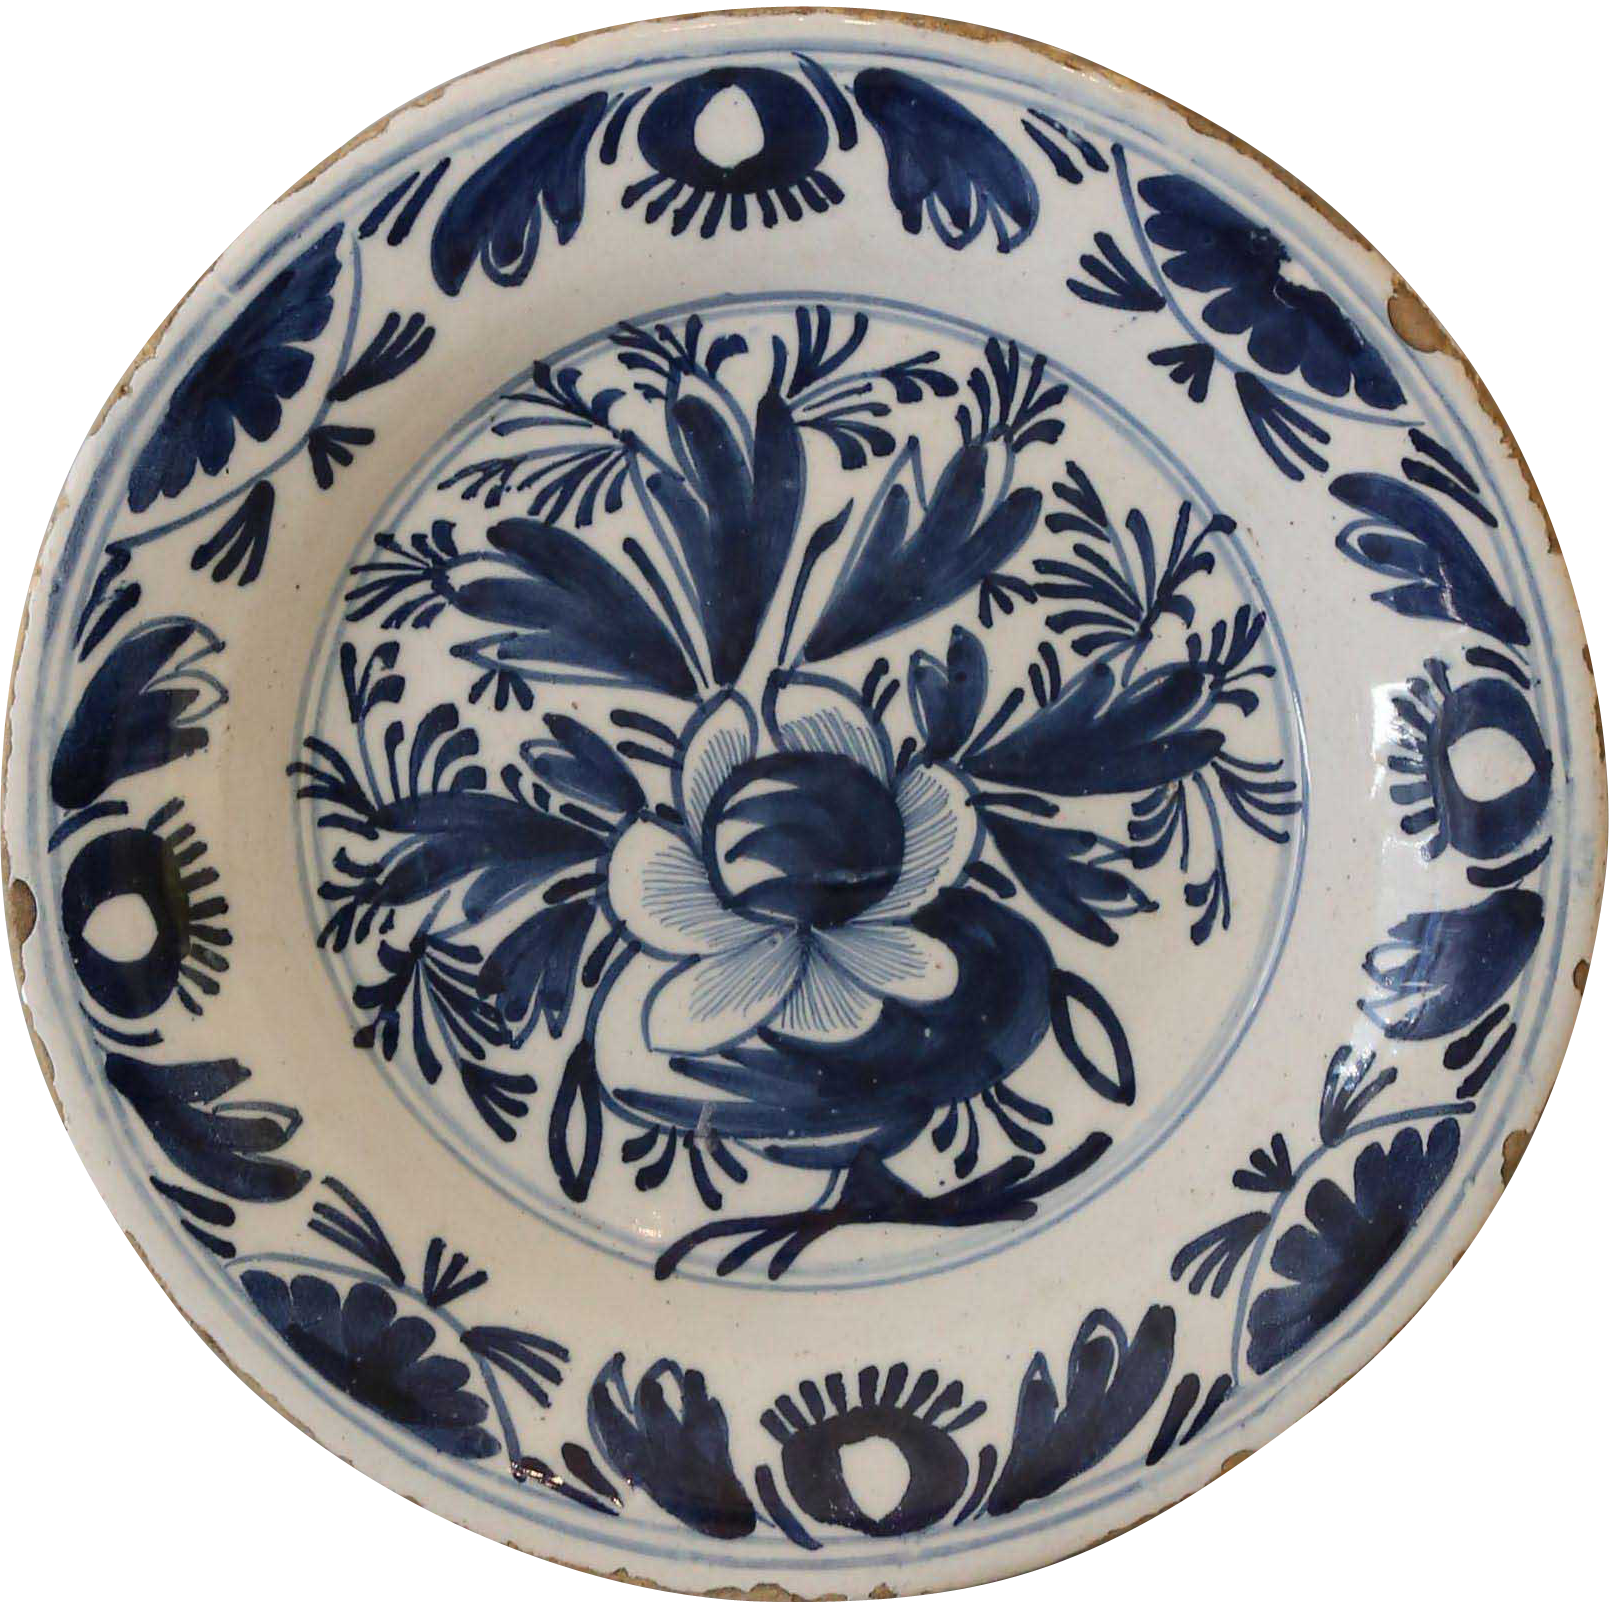 Early 18thc Delft Pottery Plate Early 18thc Delft Pottery Plate Pottery Plates Pottery Delft